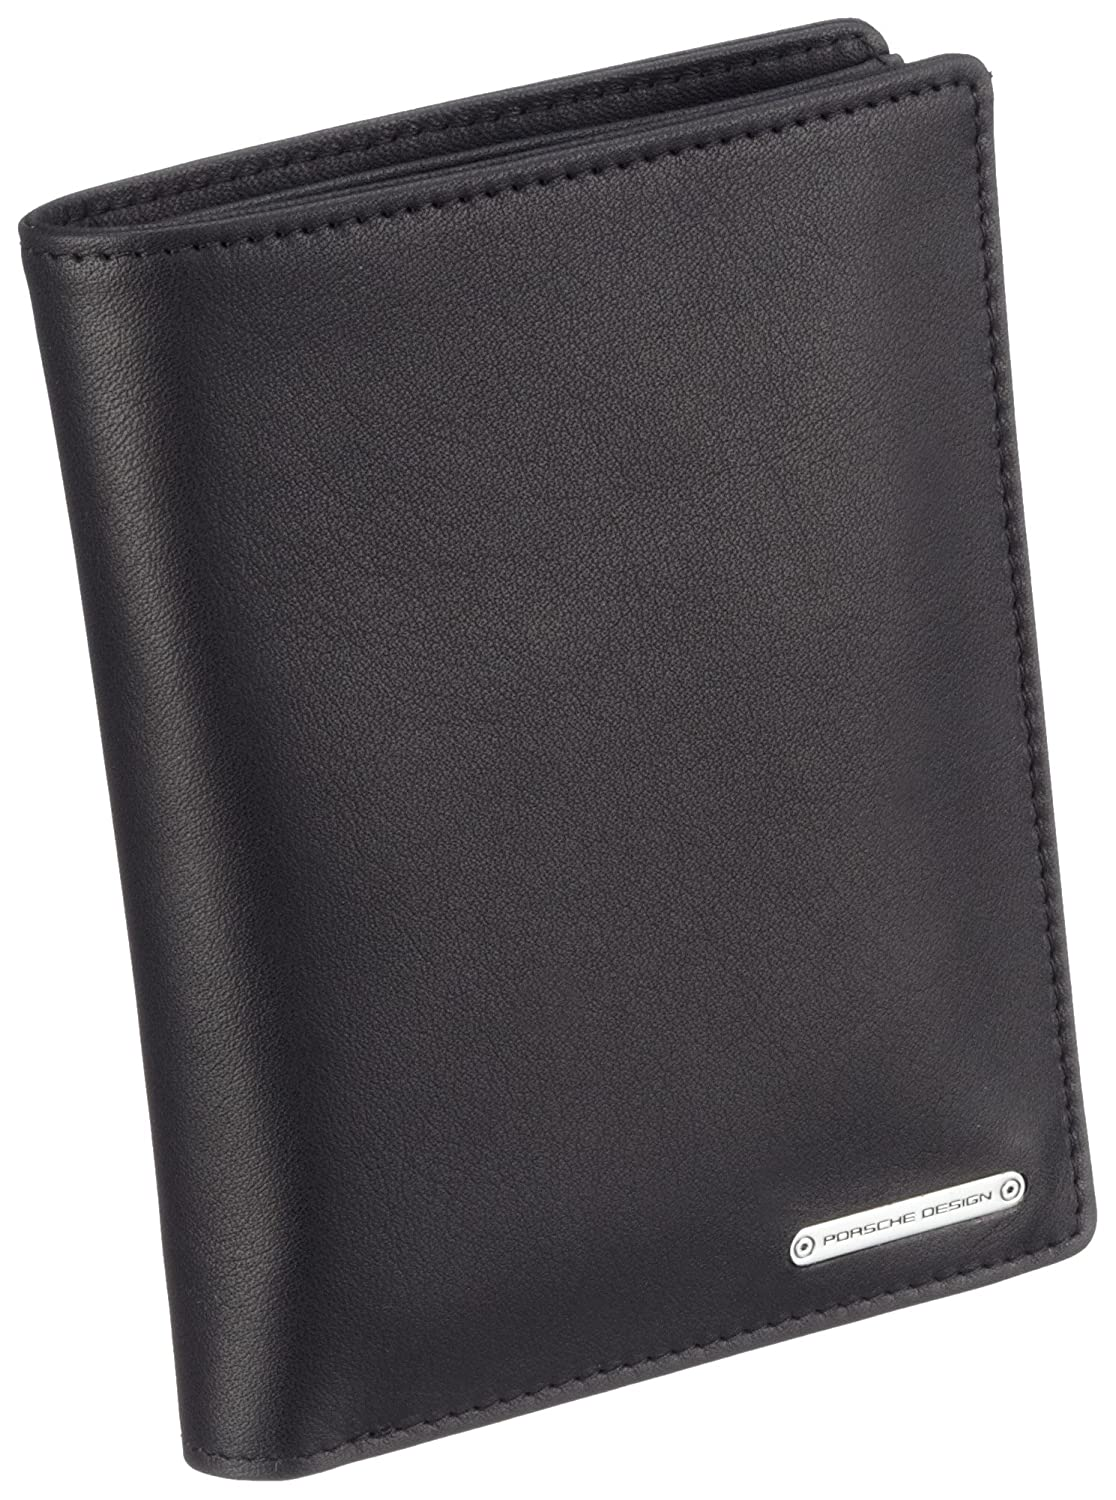 Porsche Design 09/18/19110-01 - Monedero de cuero unisex, color negro, talla one size